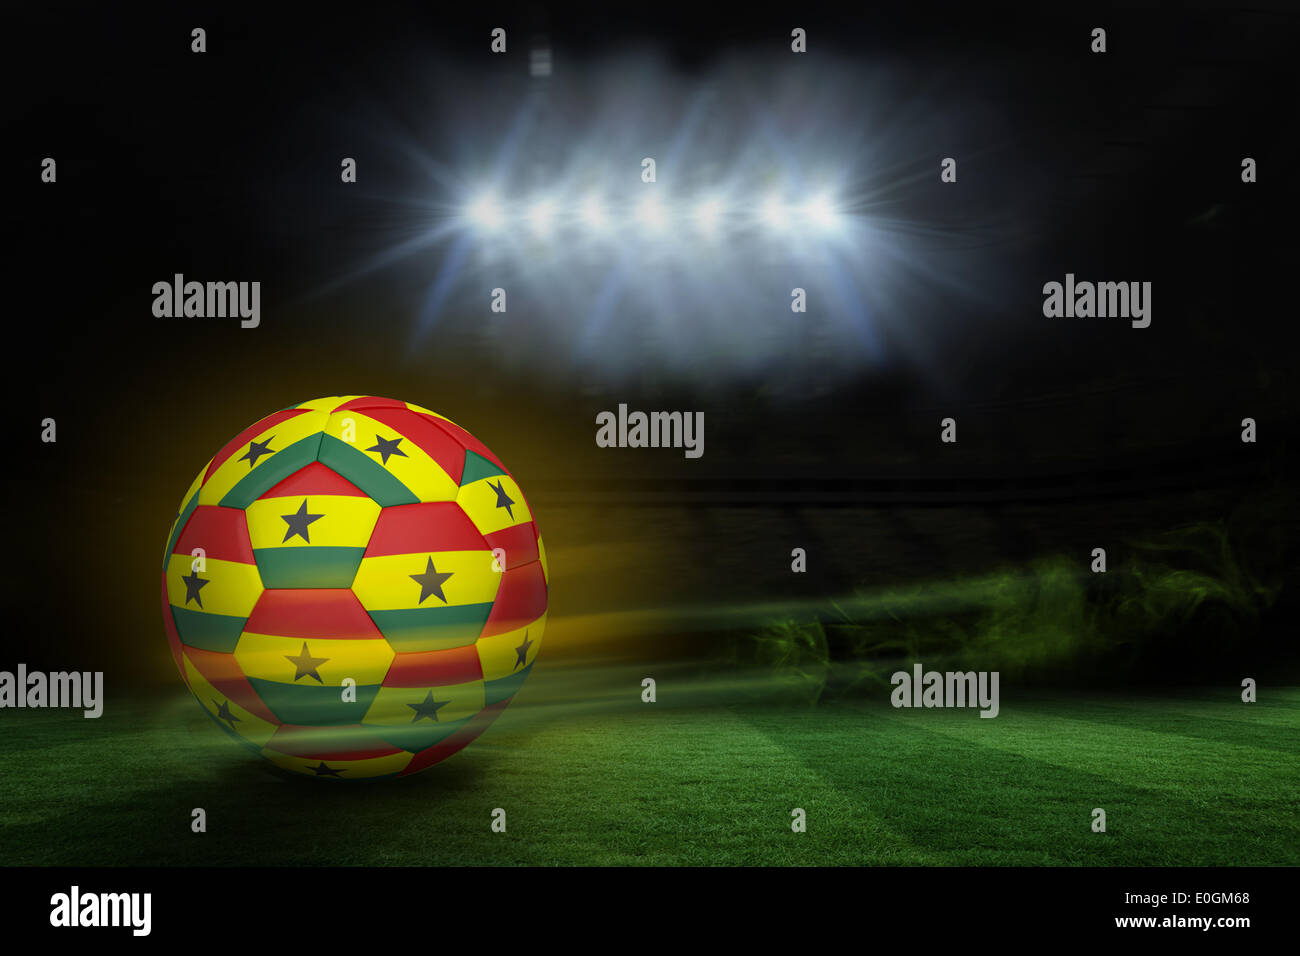 Football in ghana colours - Stock Image